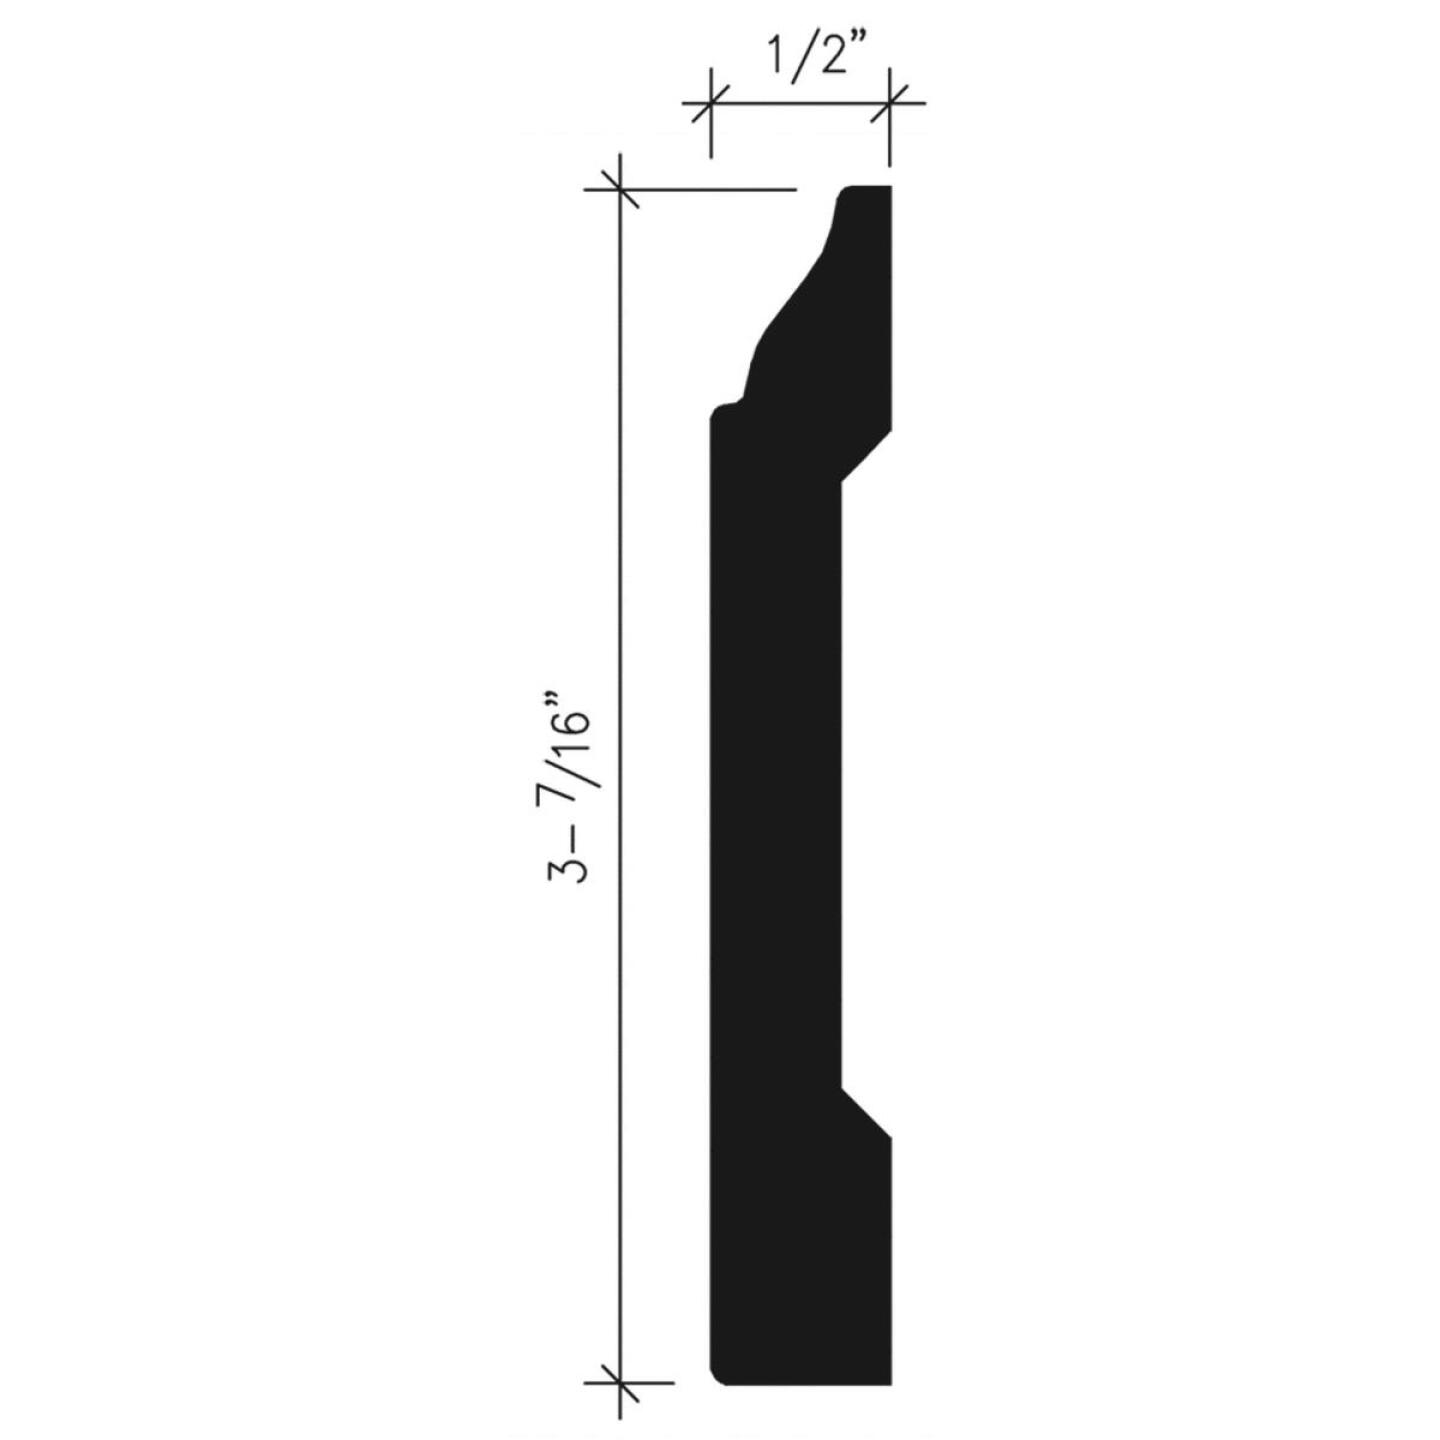 Inteplast Building Products 1/2 In. W. x 3-7/16 In. H. x 8 Ft. L. Independence Cherry Polystyrene Colonial Base Molding Image 4